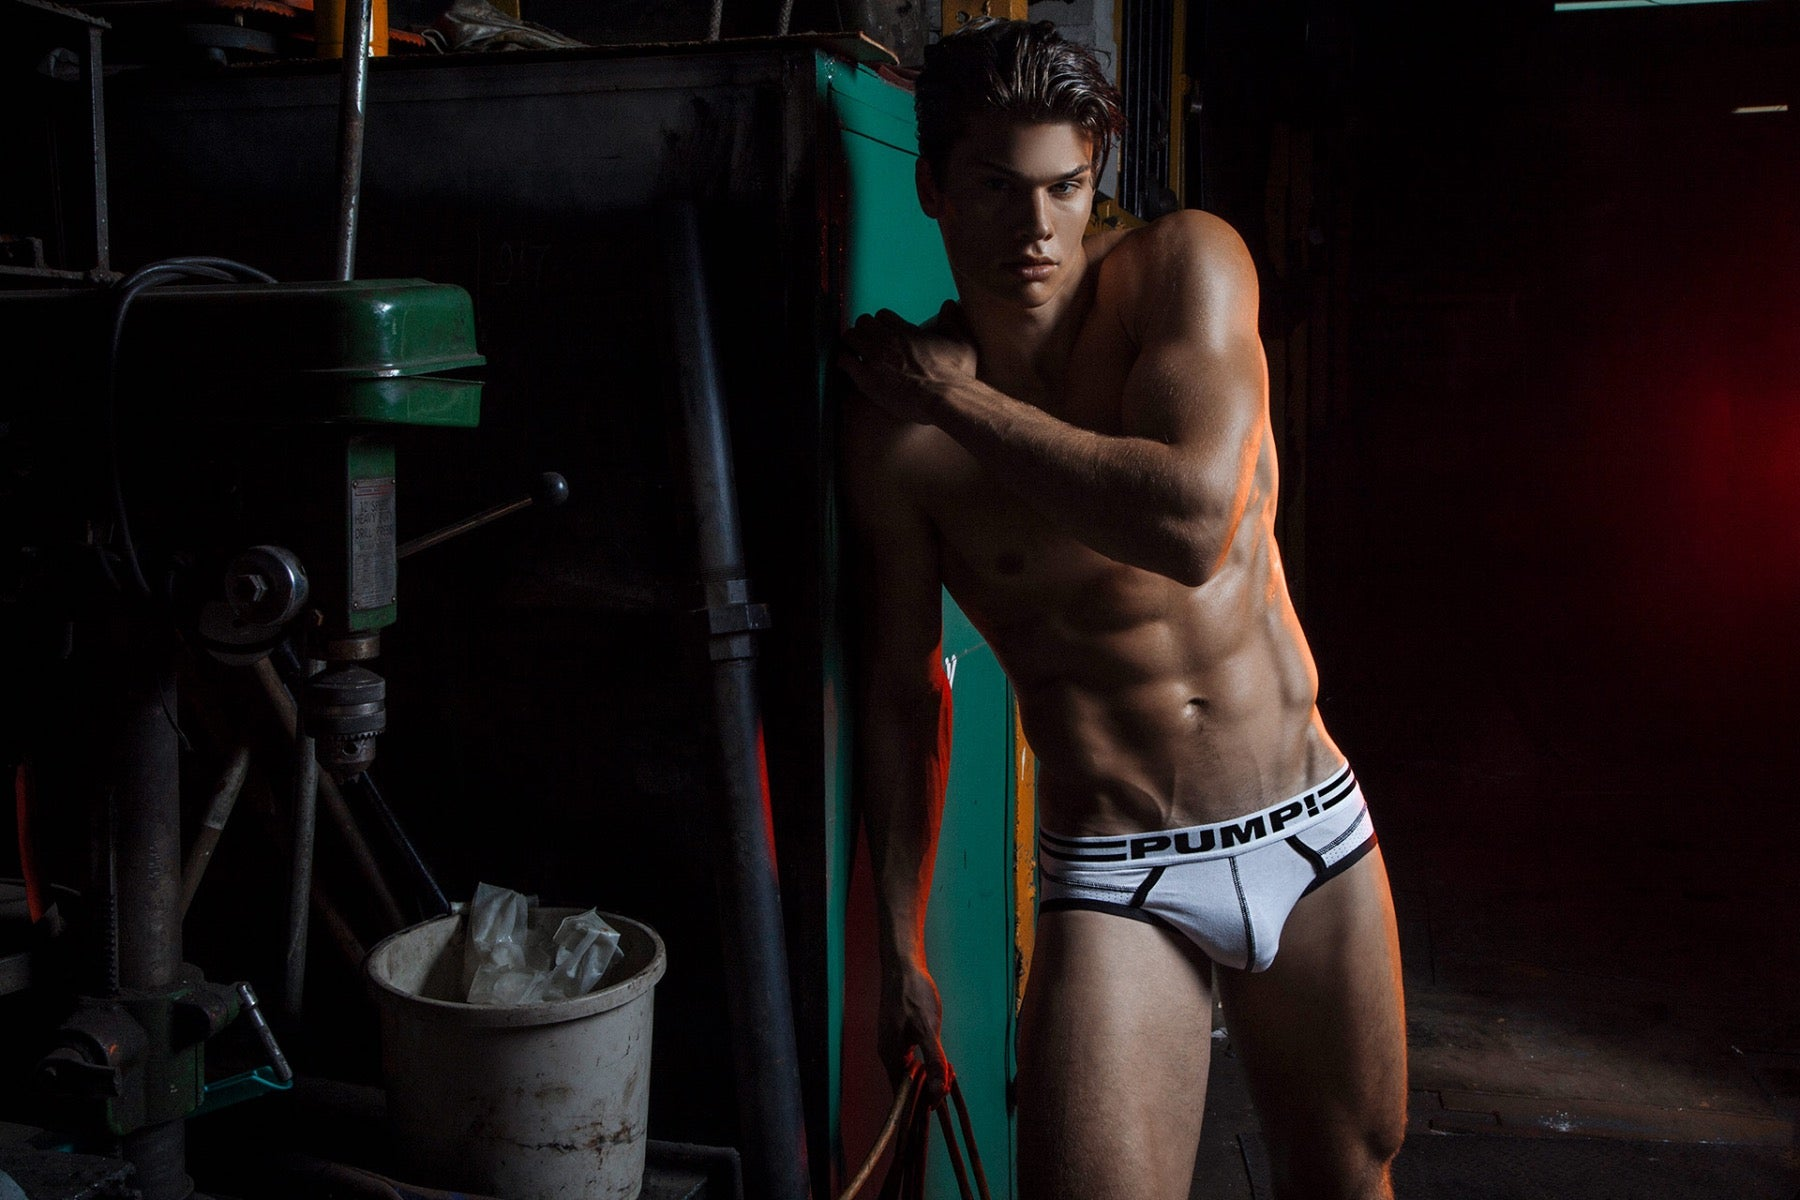 INTERVIEW WITH PUMP! UNDERWEAR MODEL PATRICK CLAYTON